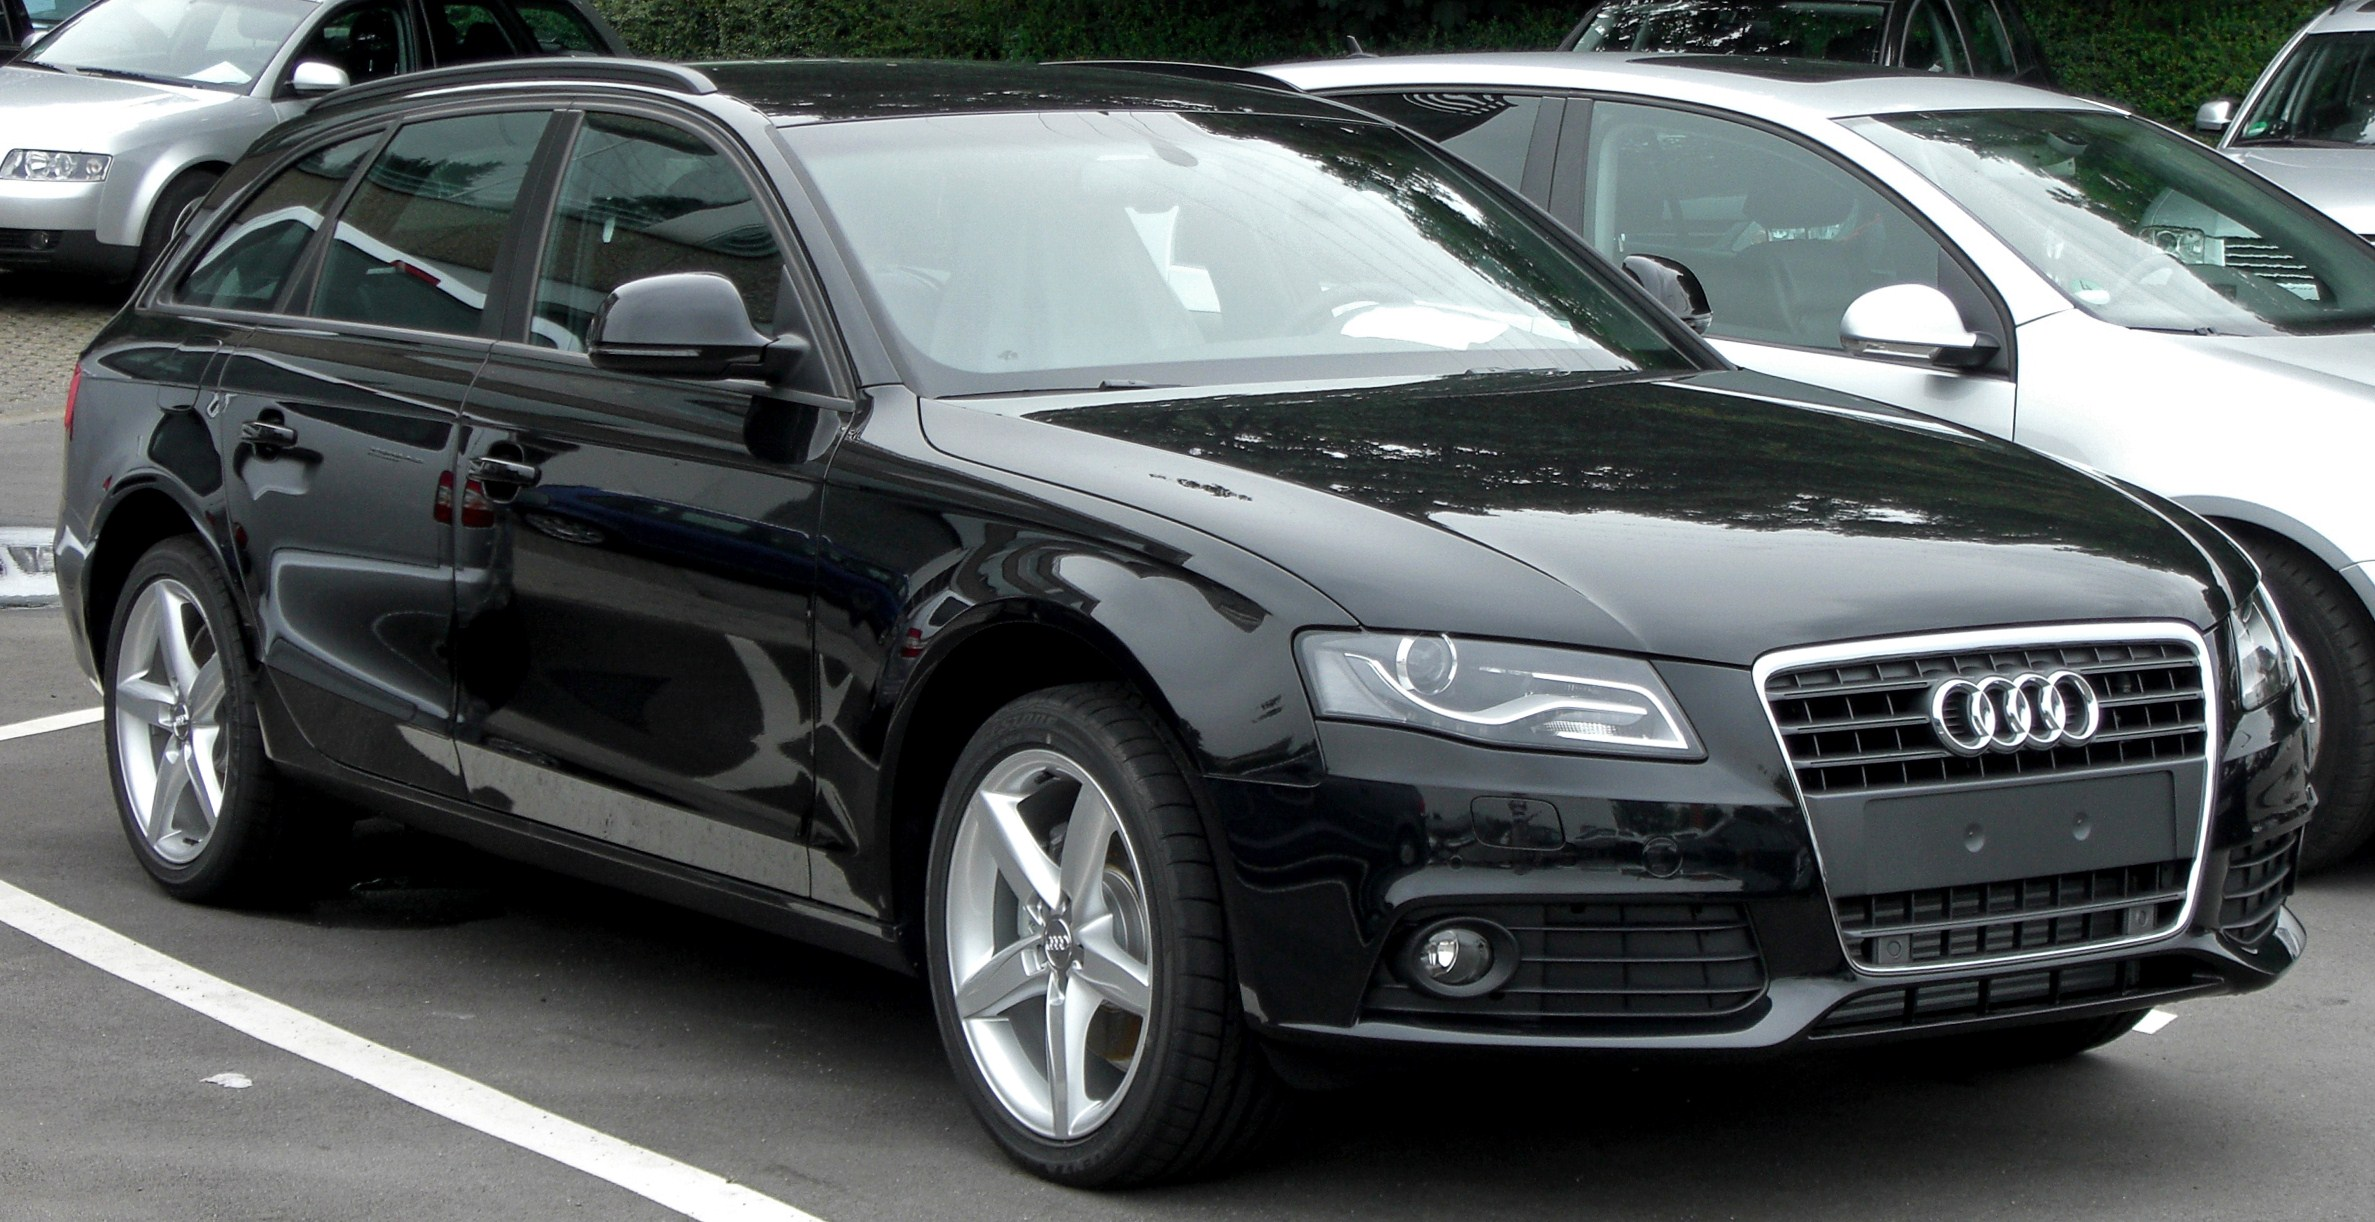 audi a4 avant reviews audi a4 avant car reviews. Black Bedroom Furniture Sets. Home Design Ideas